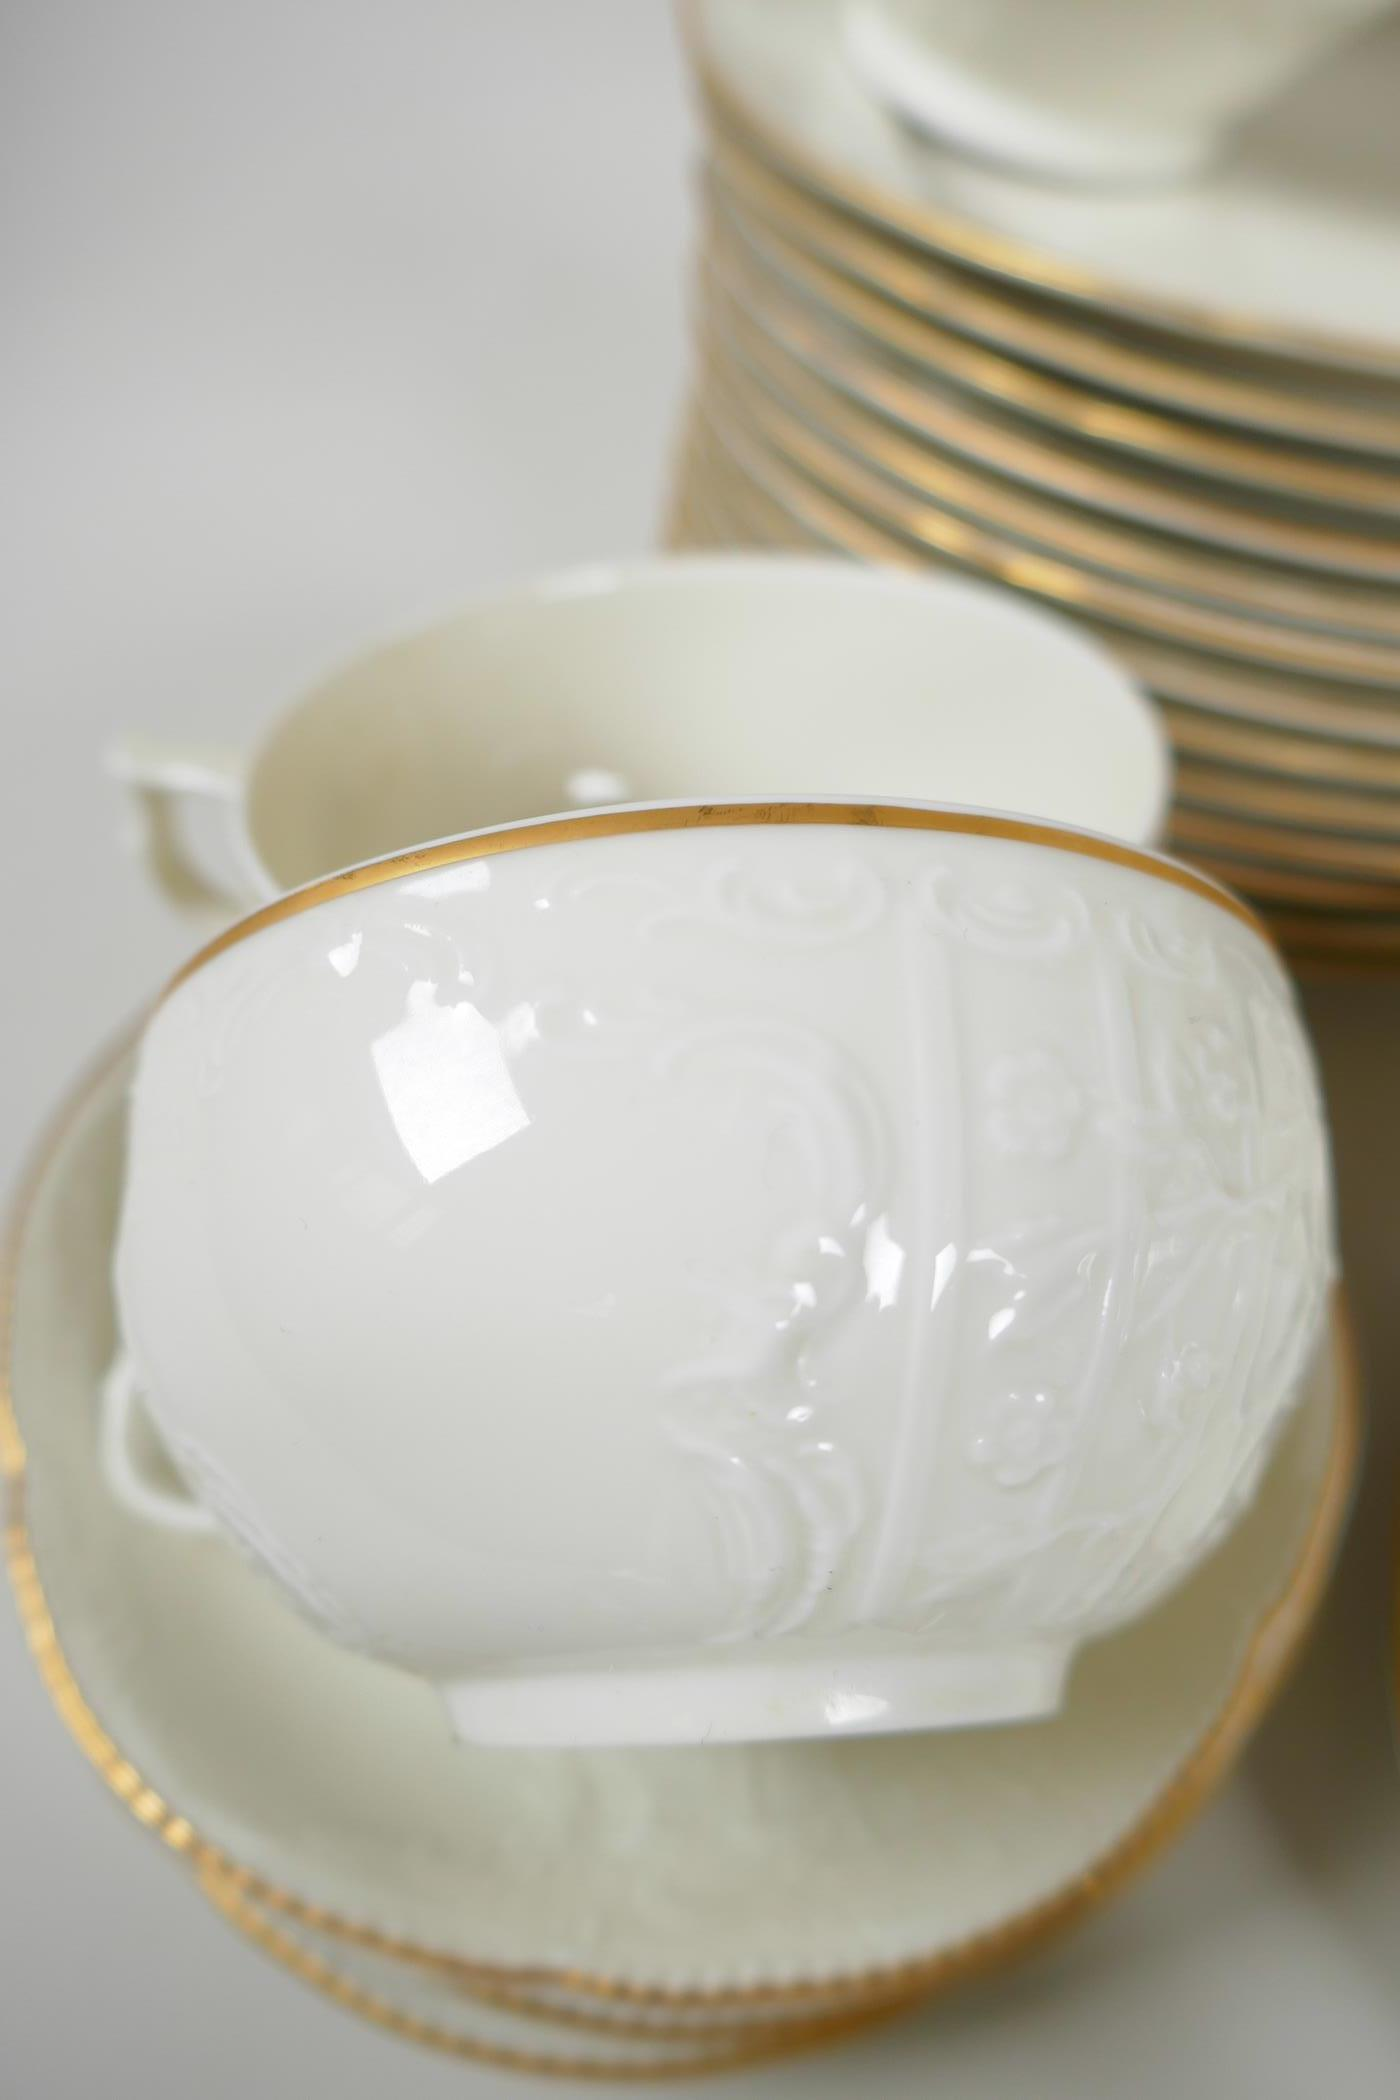 A Rosenthal 'Classic' part dinner and tea service with cream glaze and embossed decoration - Image 5 of 5